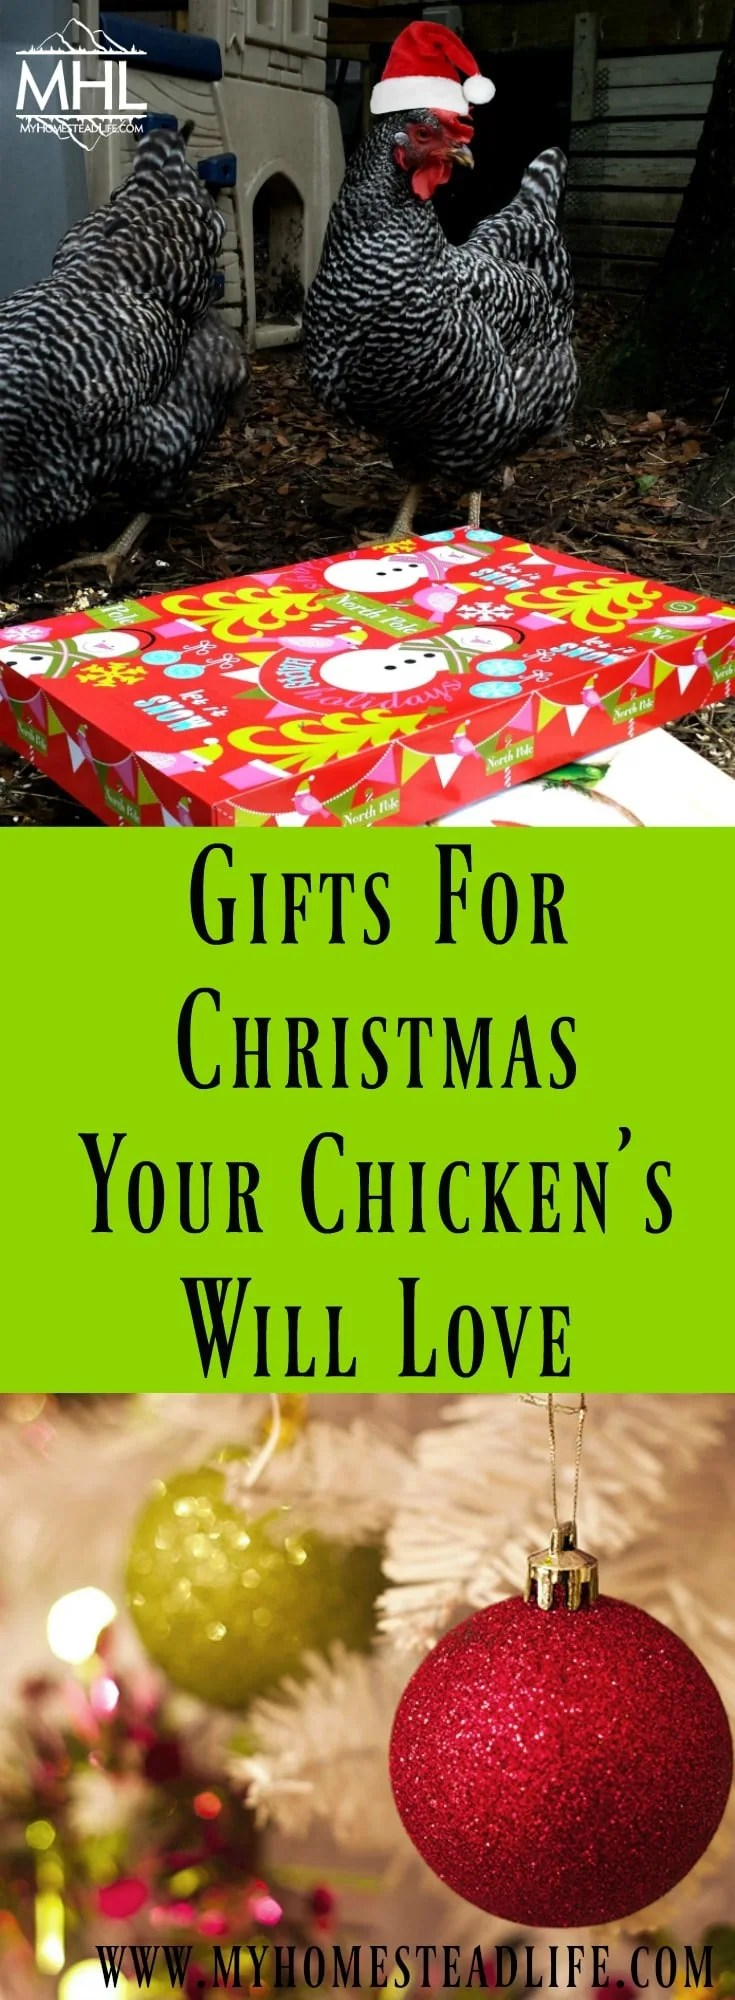 Gifts For Christmas Your Chickens Will Love